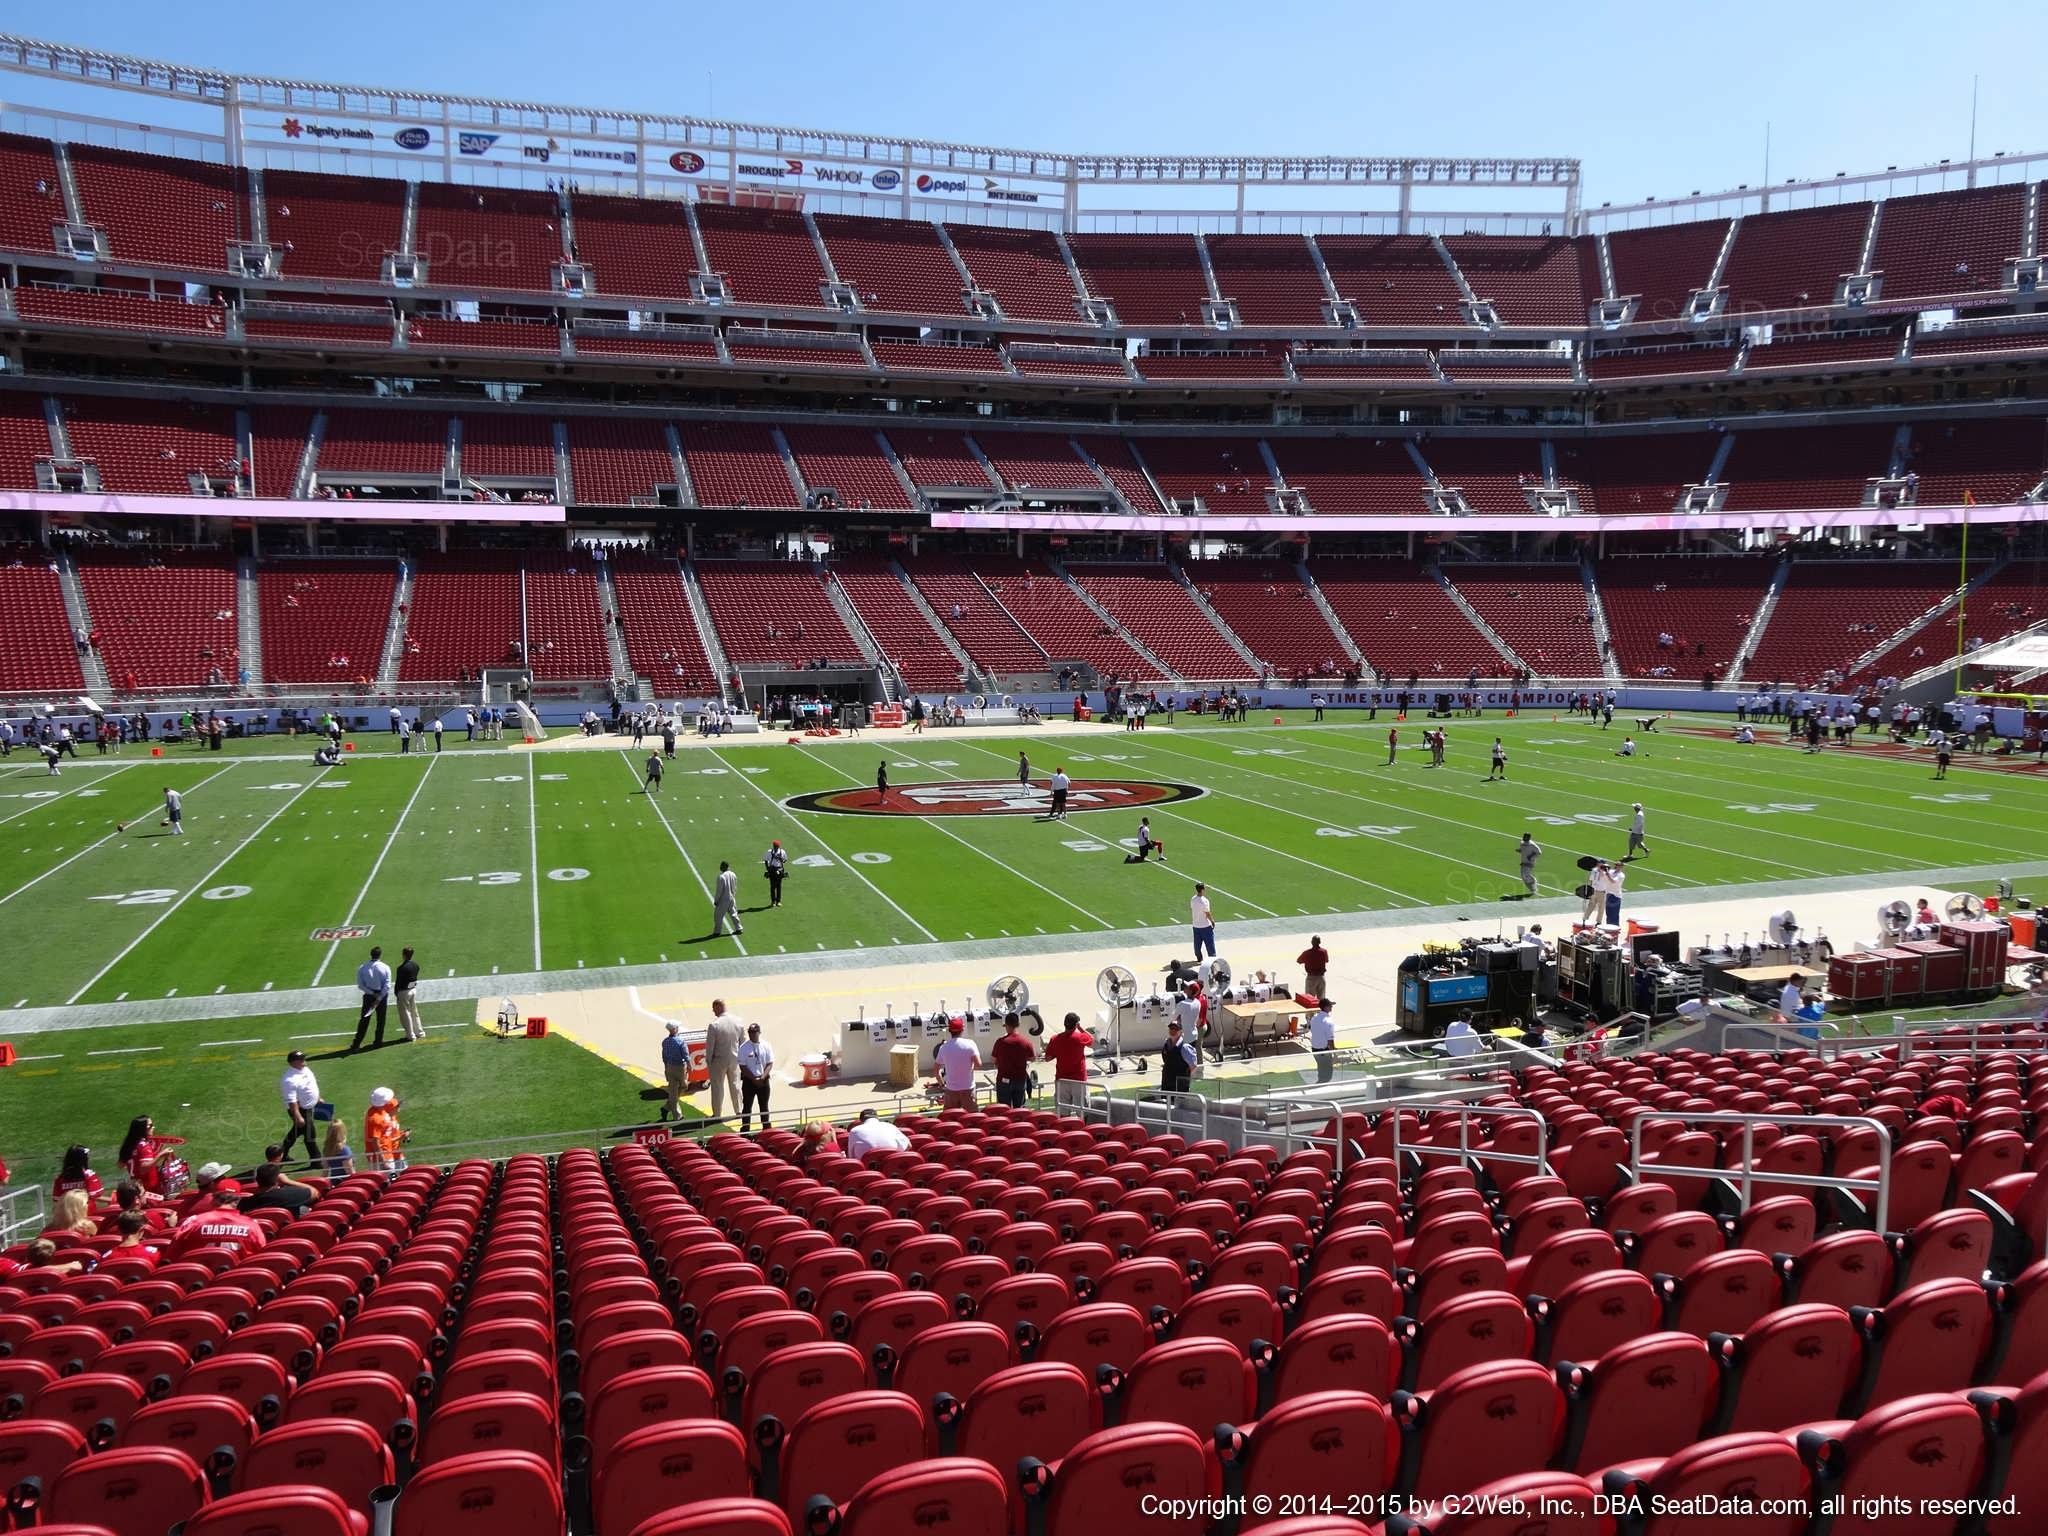 Seat view from section 140 at Levi's Stadium, home of the San Francisco 49ers